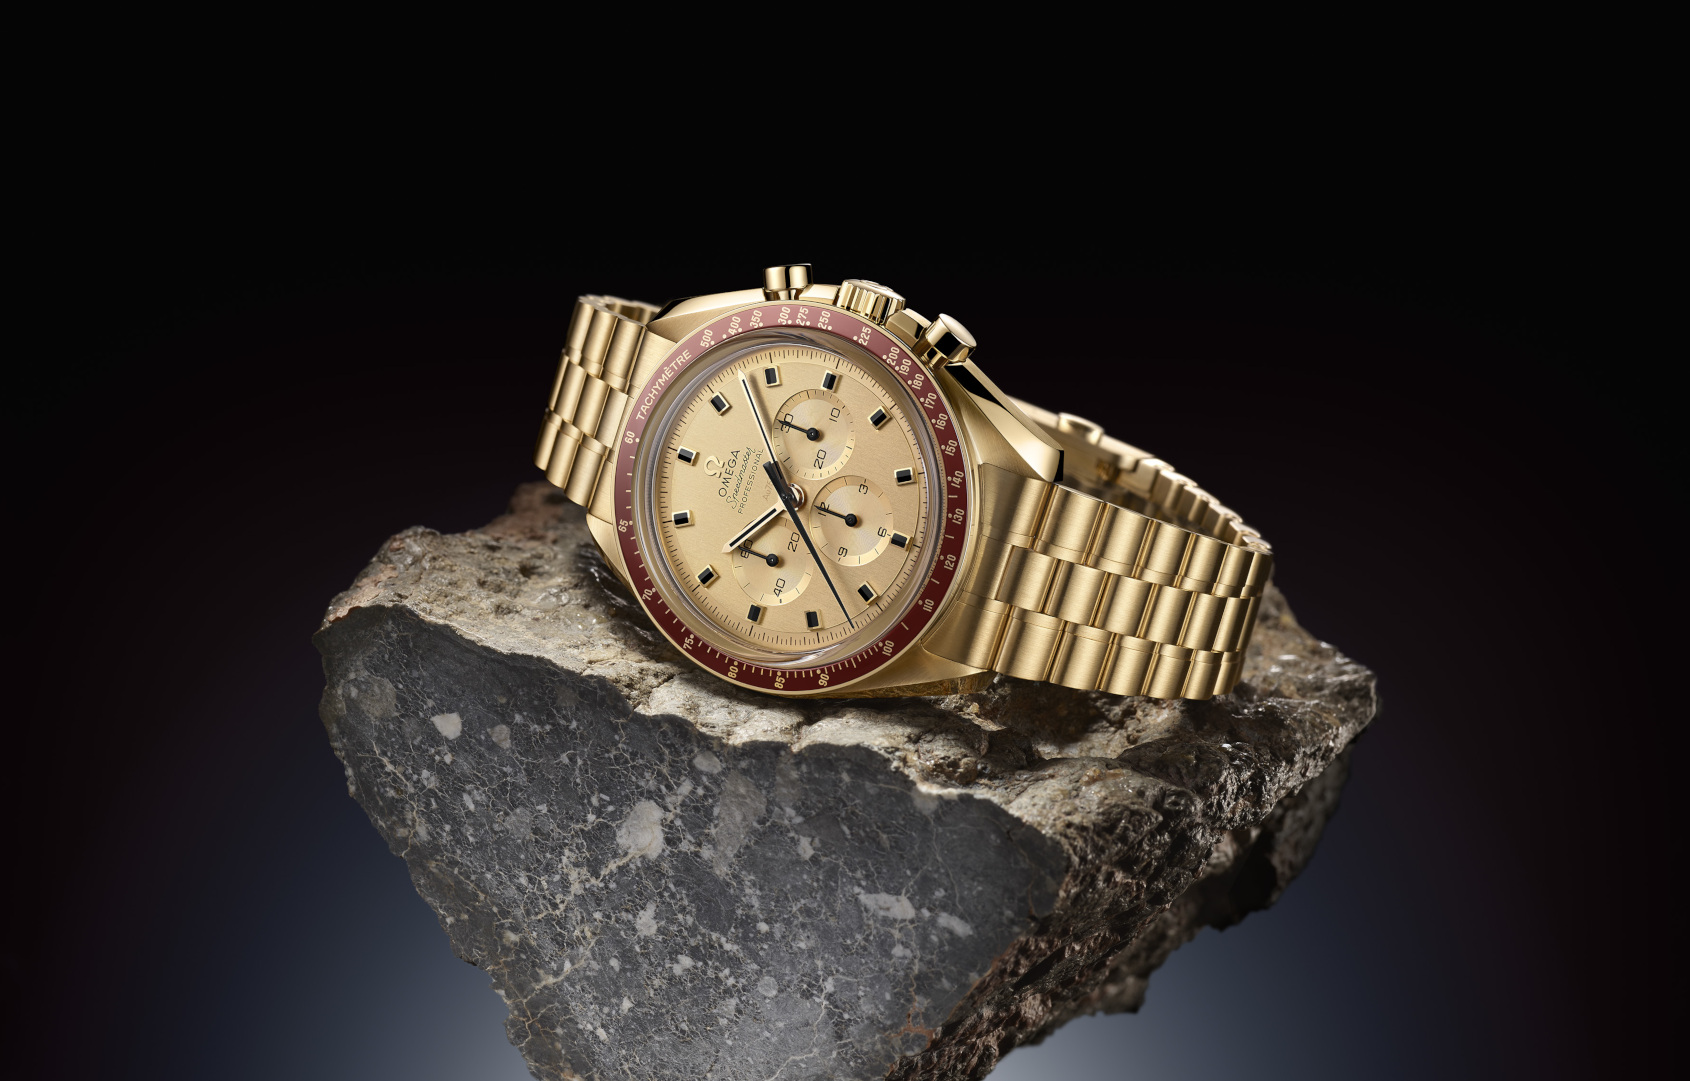 INTRODUCING: A brand new gold Speedmaster for half the price of vintage – the Omega Speedmaster Apollo 11 50th Anniversary Limited Edition